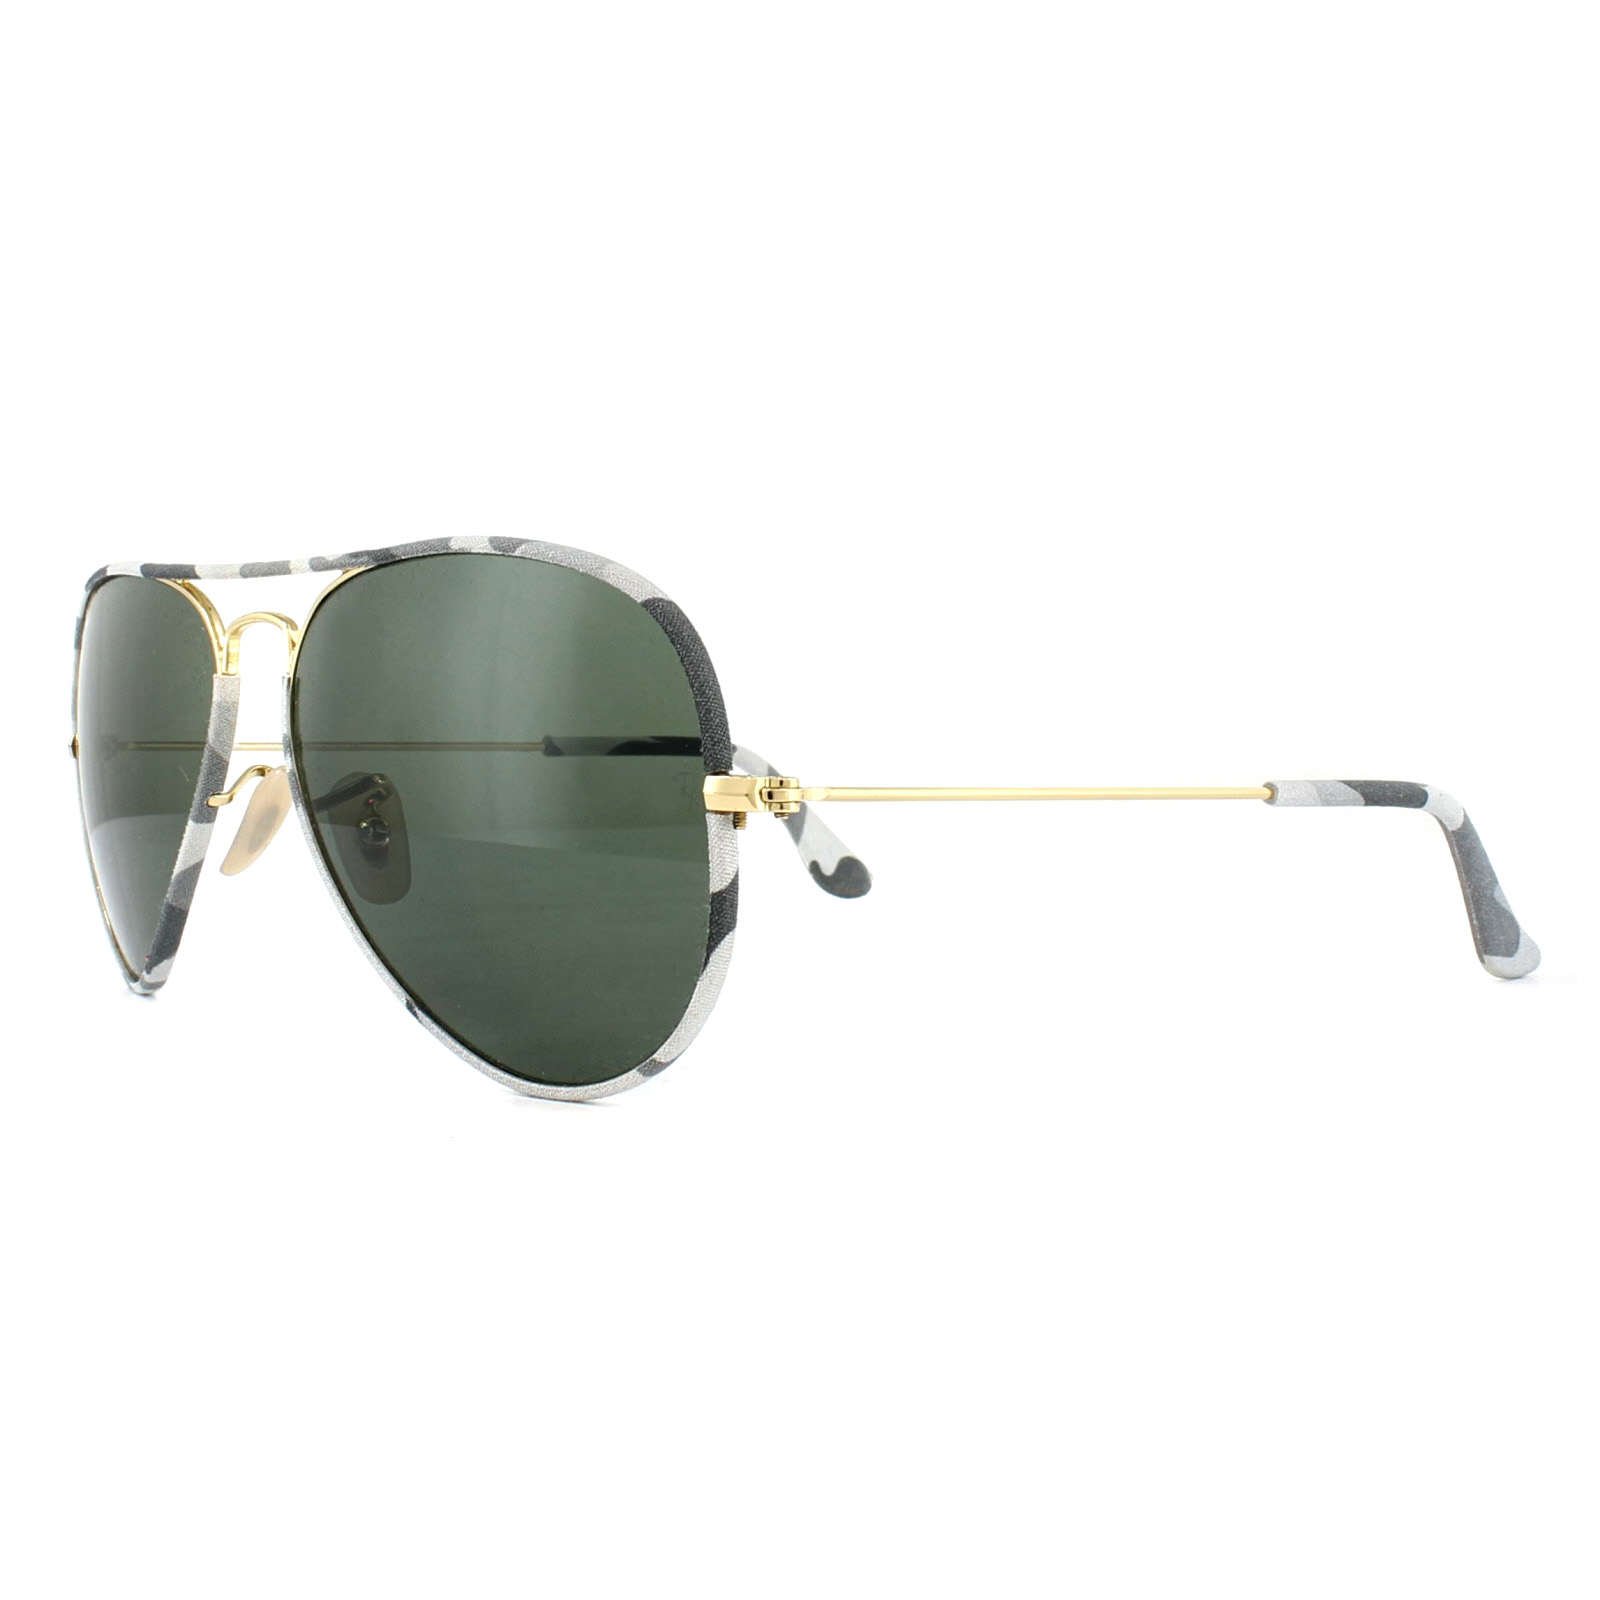 c3189fcf40 Sentinel Ray-Ban Sunglasses Aviator Full Colour 3025JM 171 Grey Camo Gold  Green G-15